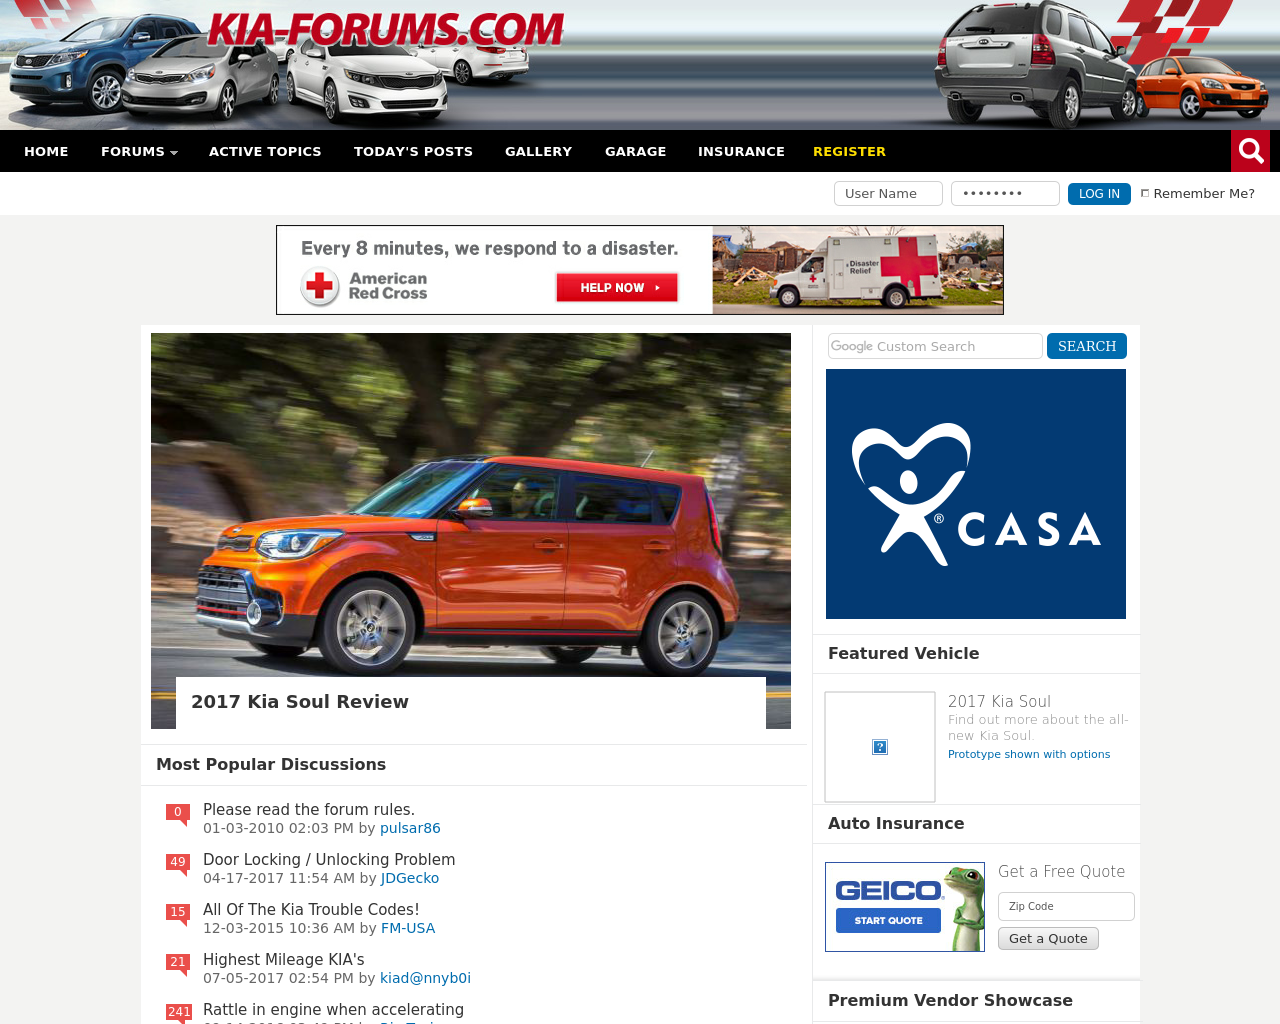 Kia-Forums-Advertising-Reviews-Pricing